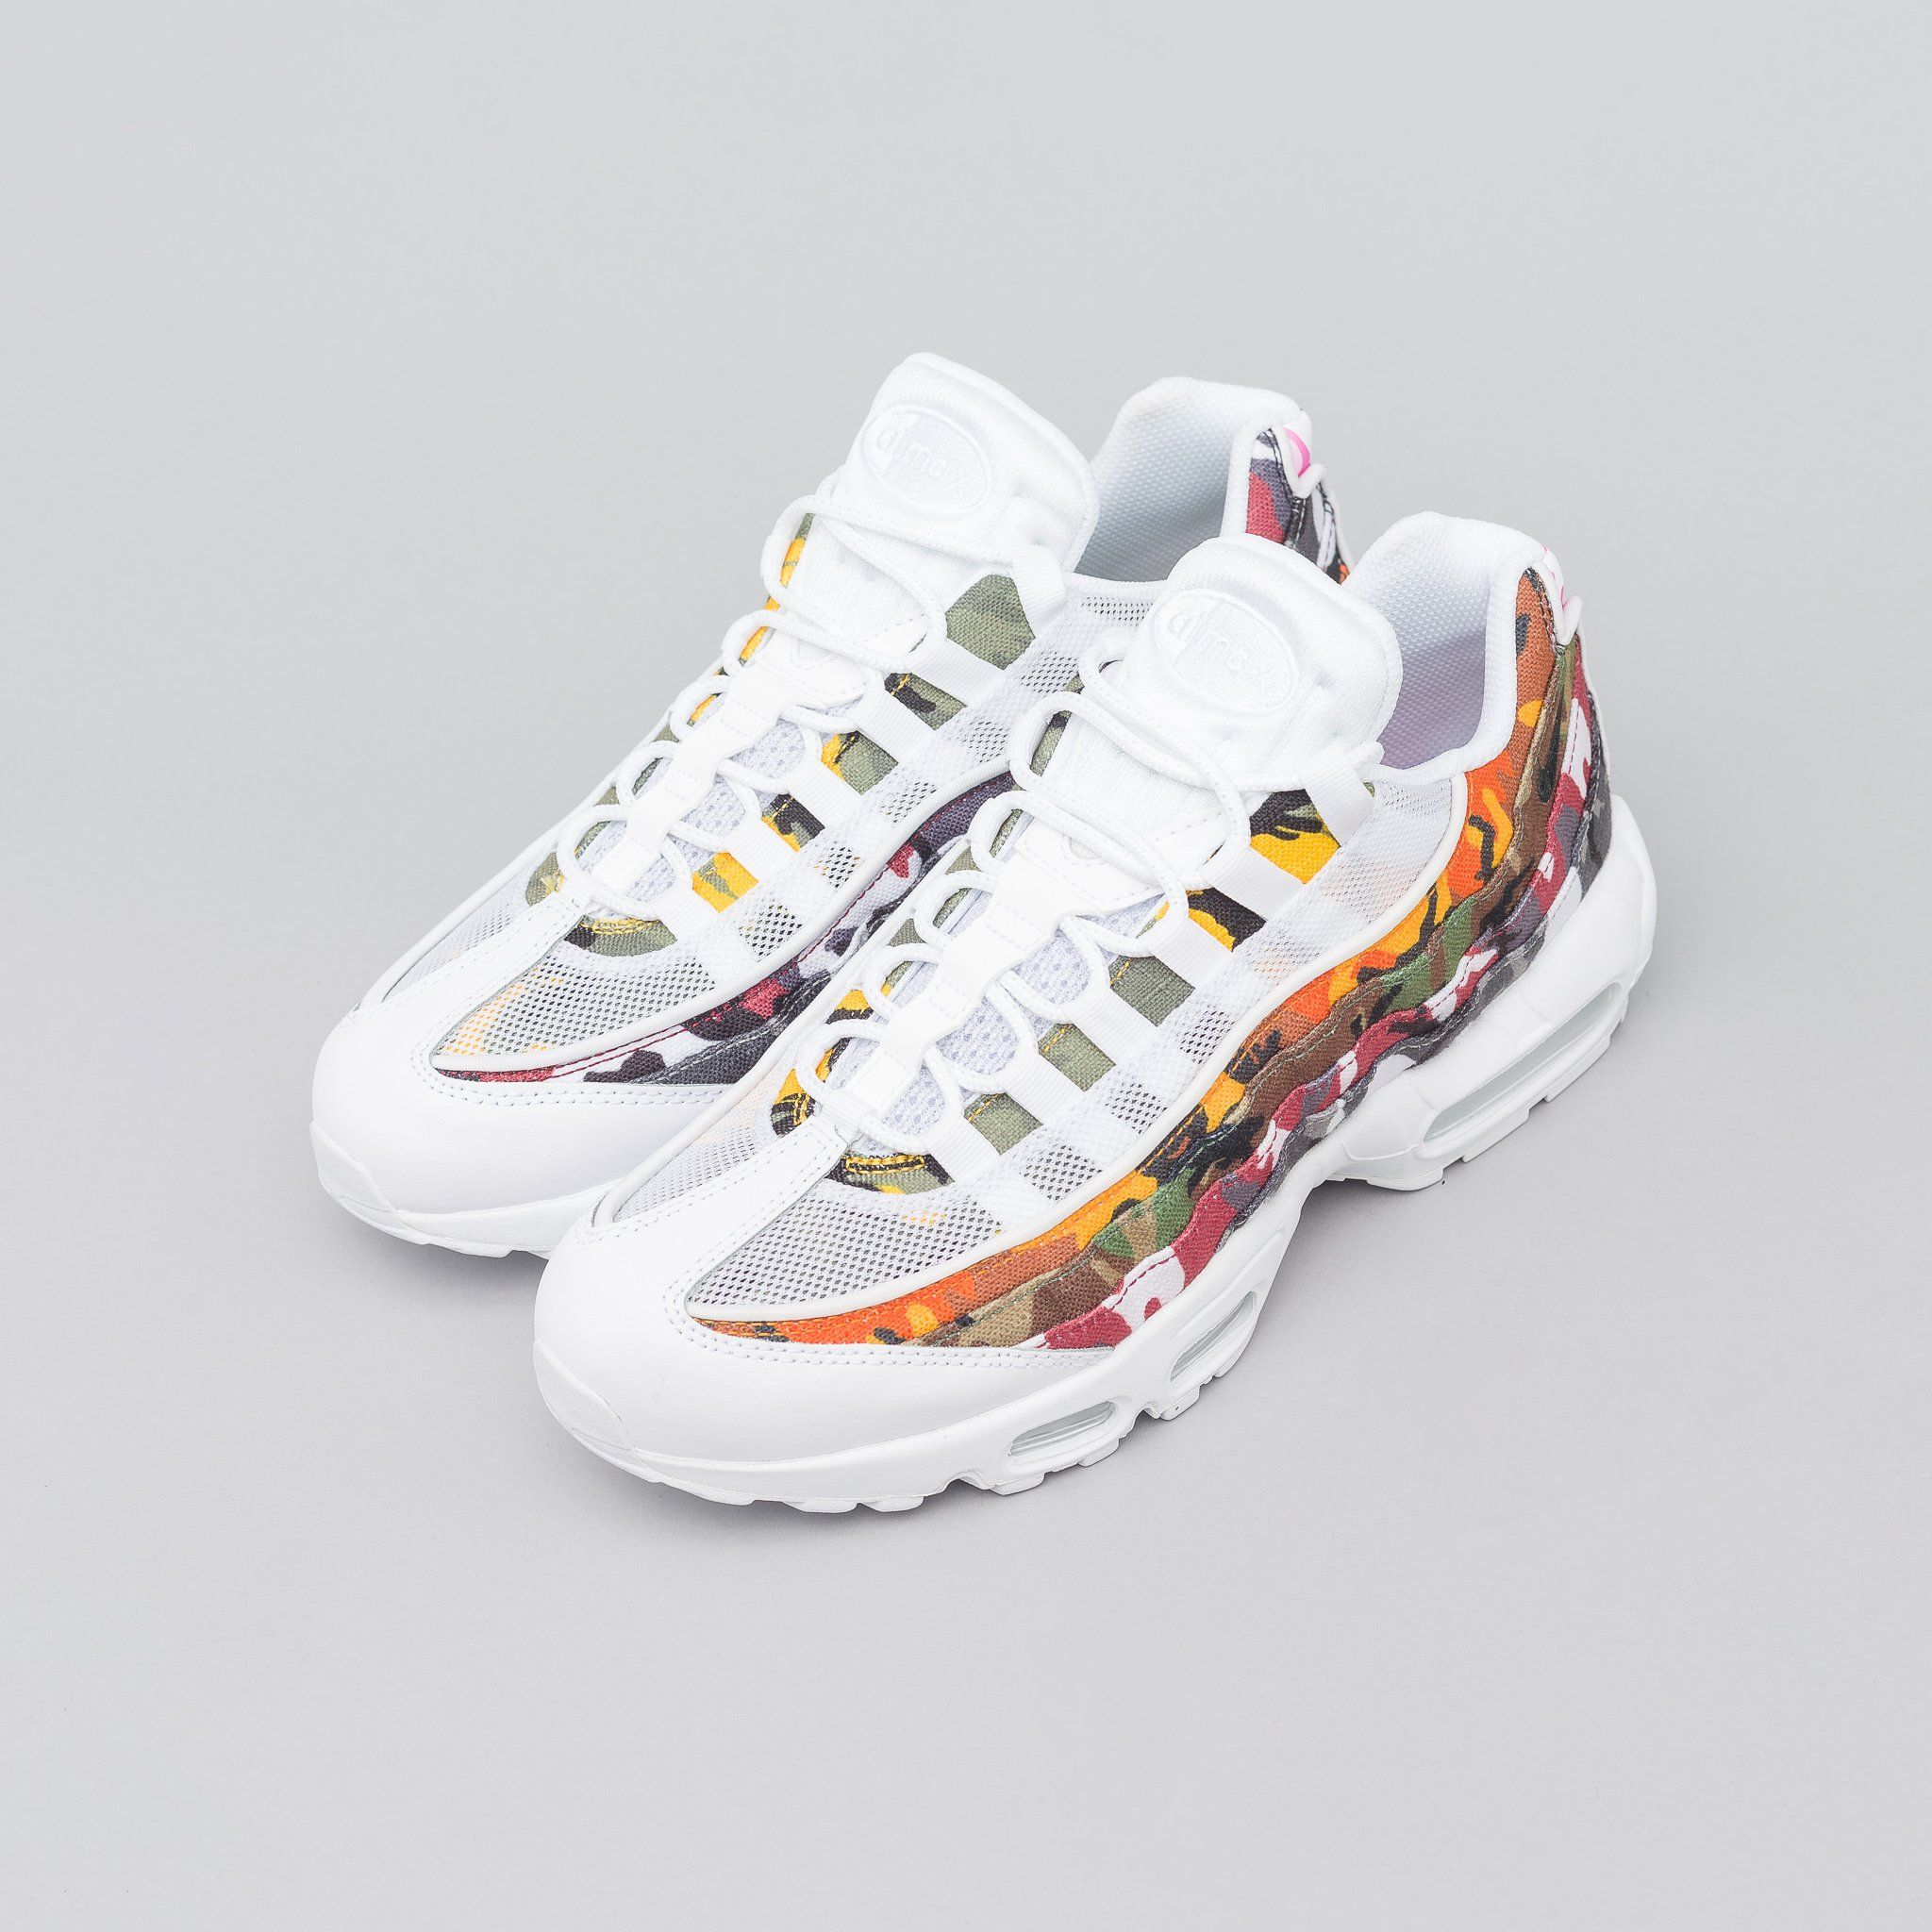 the best attitude 52bb3 e5bad Air Max 95 ERDL Party in White Camo